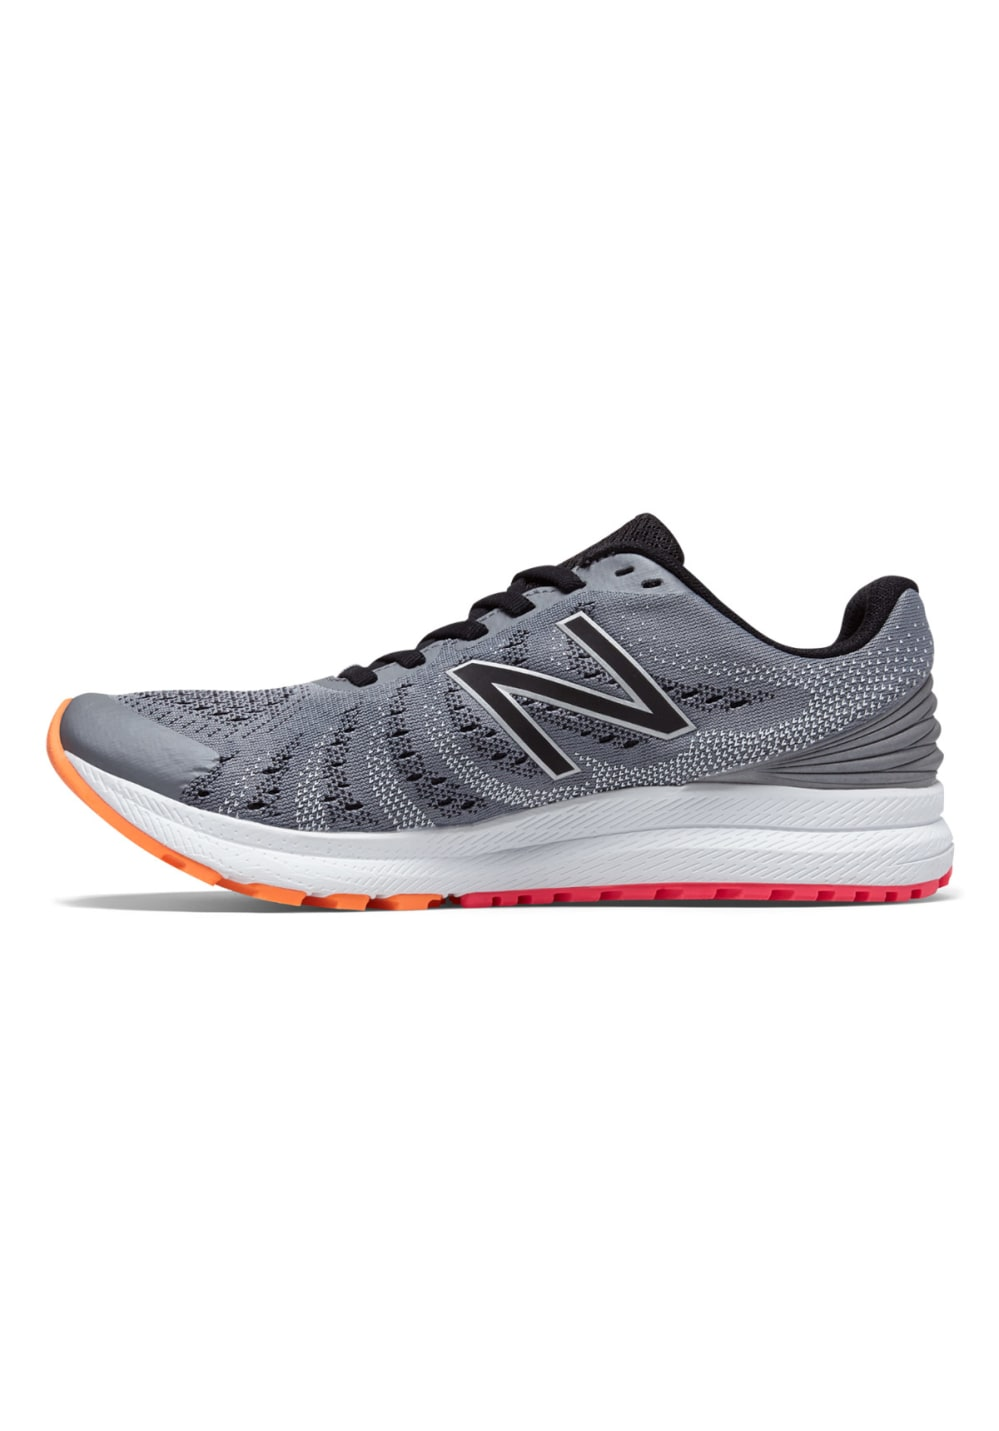 New Balance Fuel Core Rush V3 Chaussures running pour Femme Gris